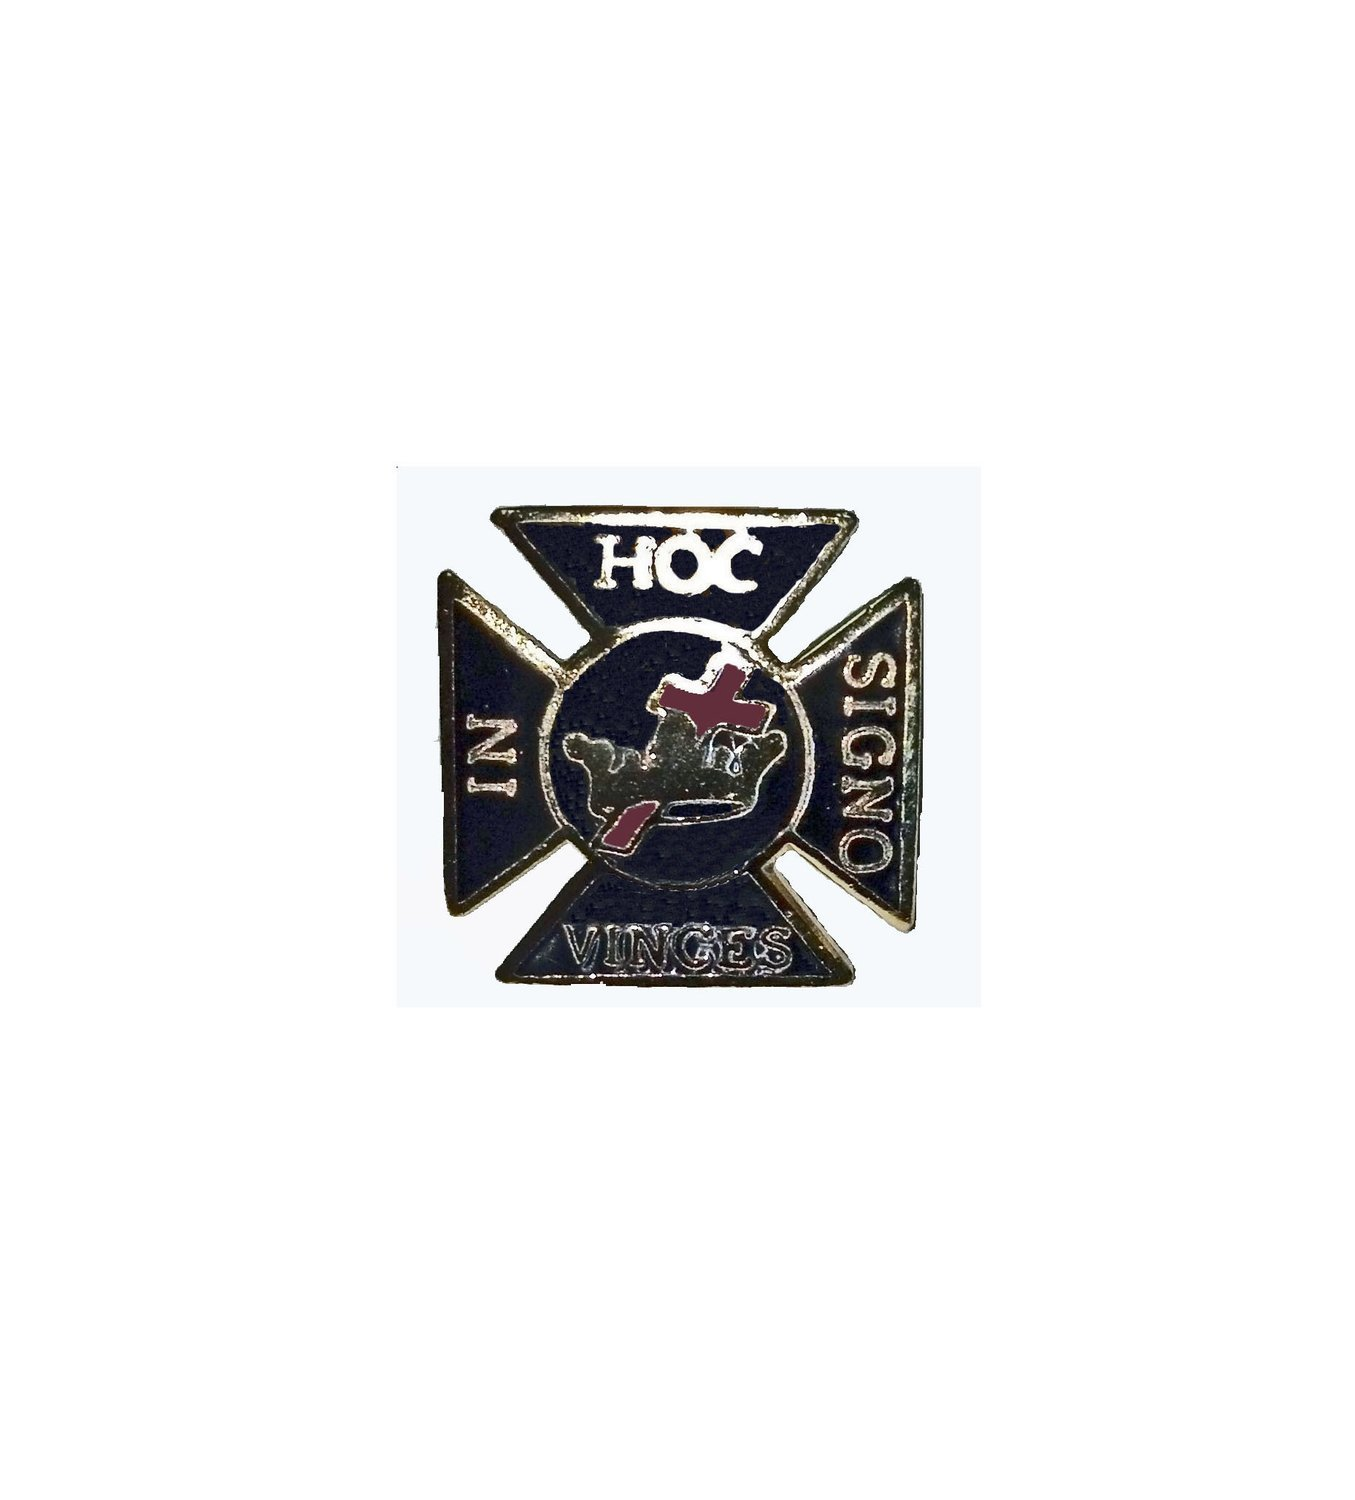 In-Hoc-Signo-Vinces lapel pin